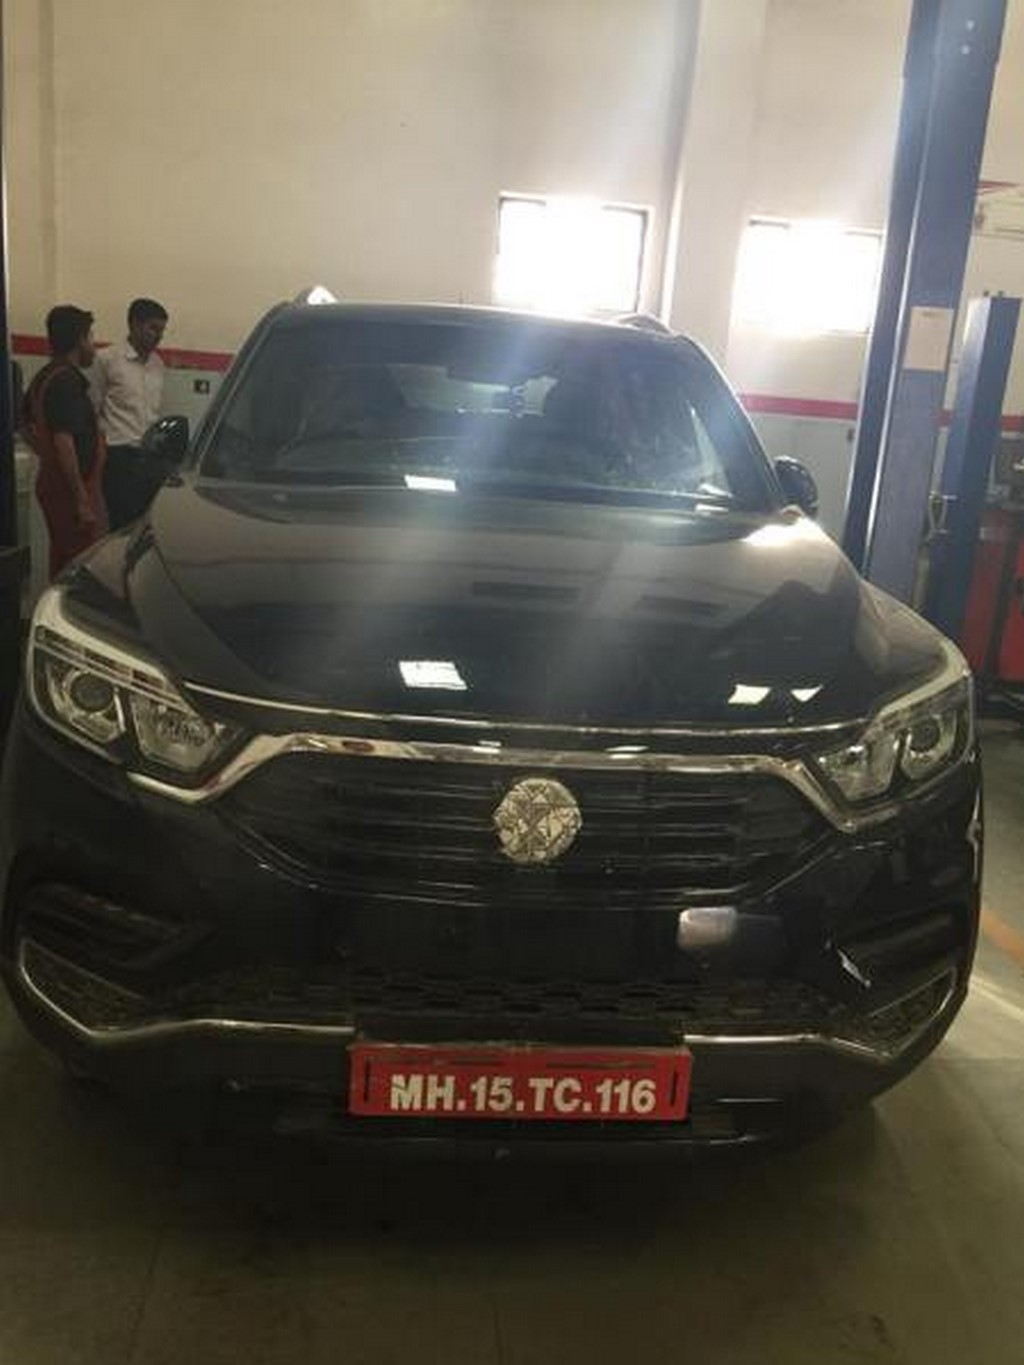 Mahindra Xuv 700 Spotted In Real Life Images Release Dateauto News